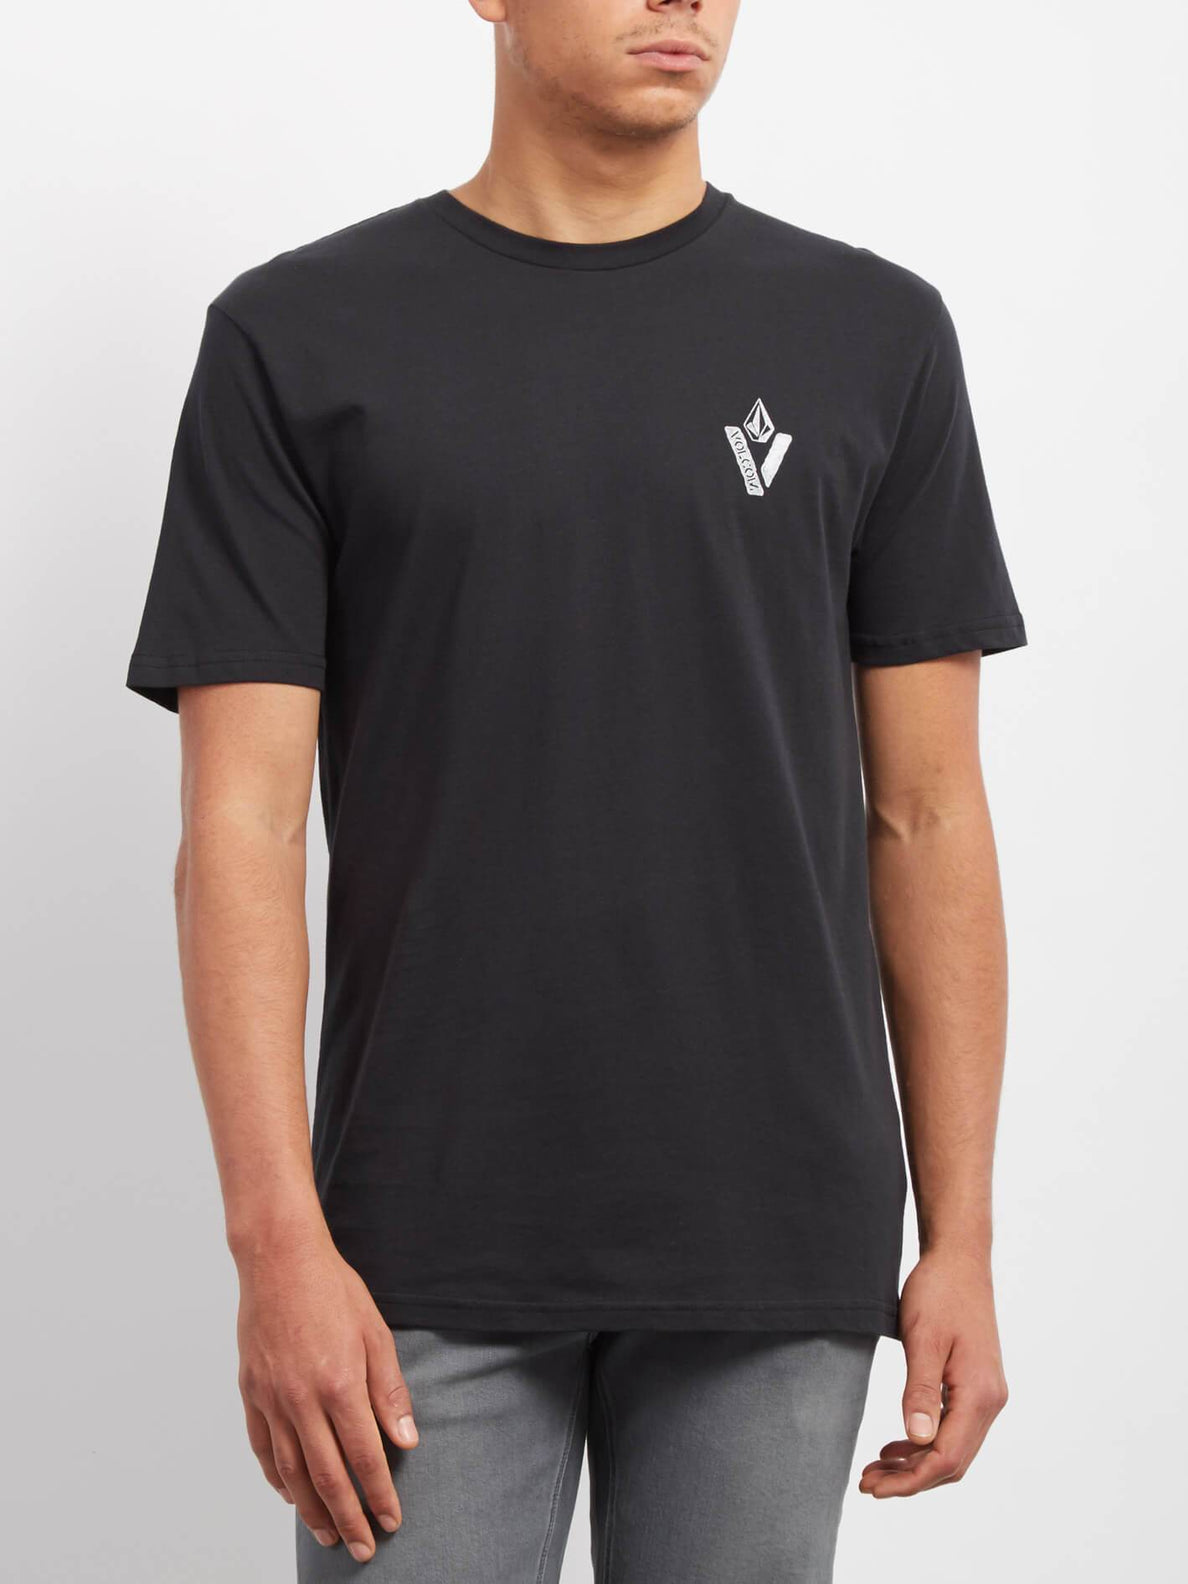 Cut Out T-shirt - Black